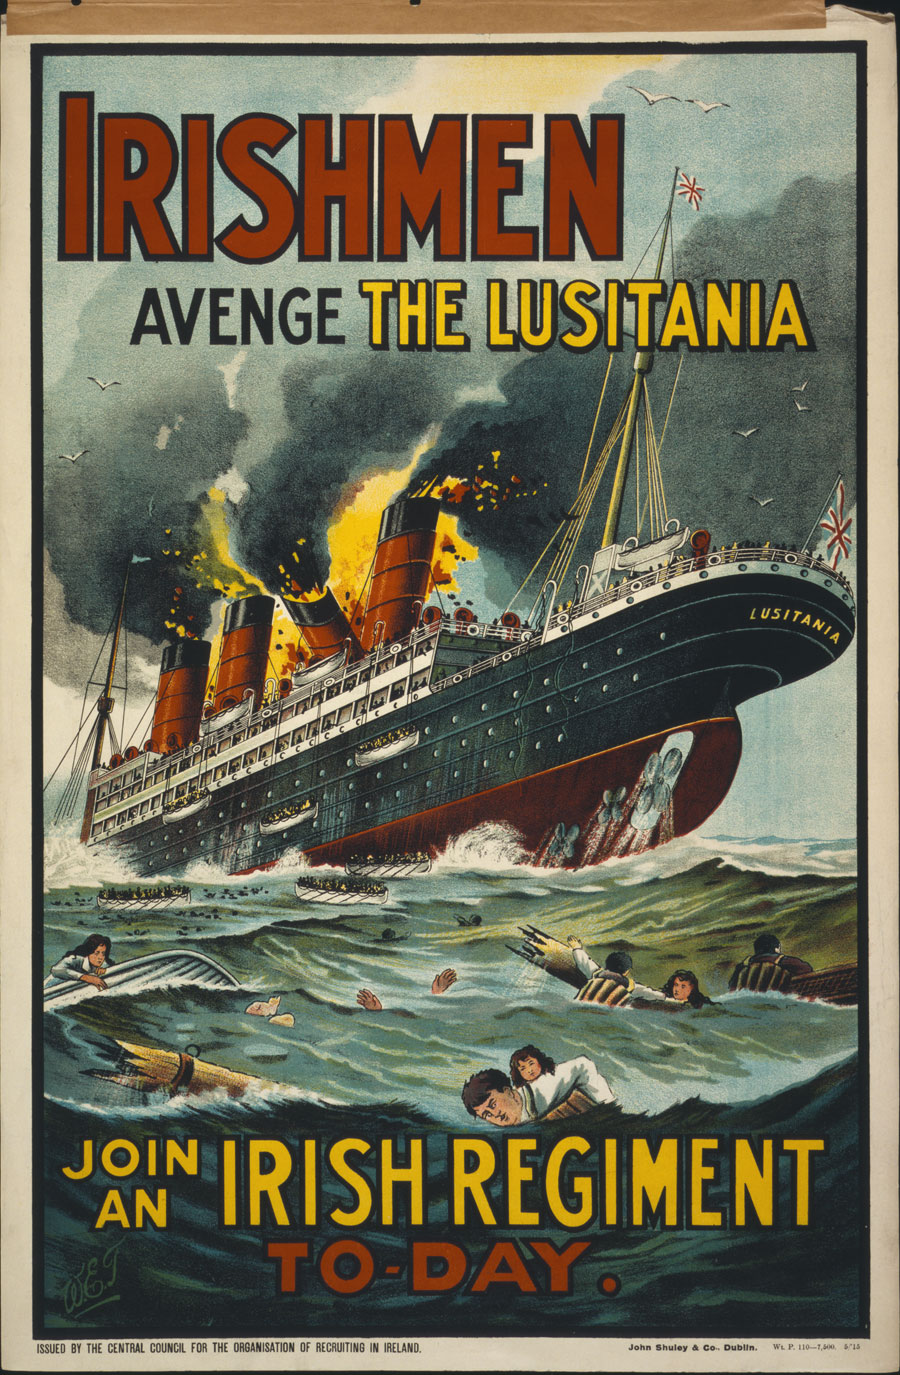 Irishmen - avenge the Lusitania